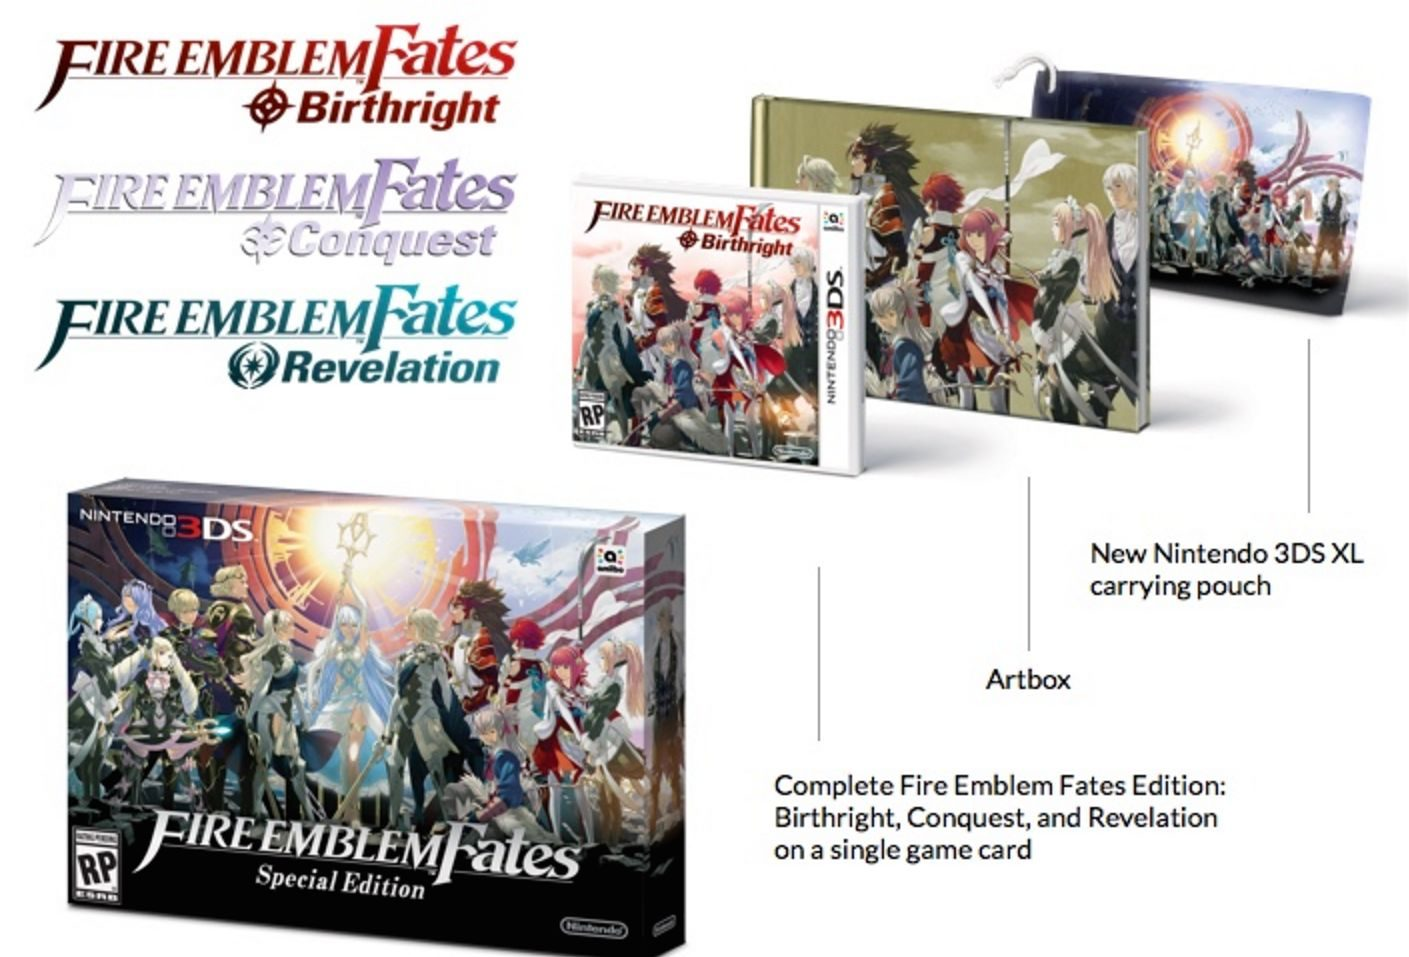 fire-emblem-fates-finally-gets-a-western-release-date-but-not-one-for-europe-716120